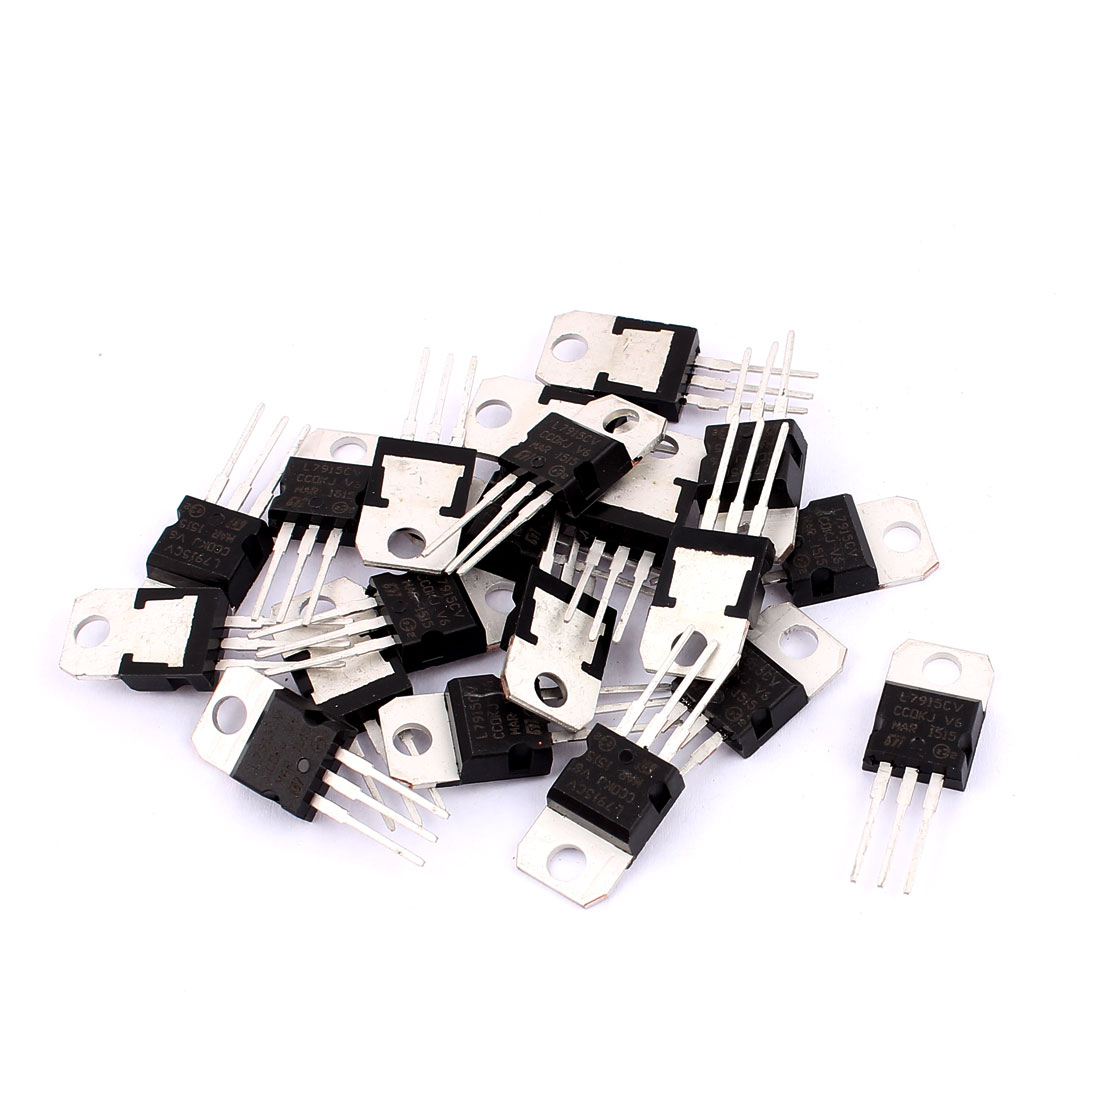 20 Pcs L7915CV Package TO-220 Negative Voltage Regulator 1.5A 15V